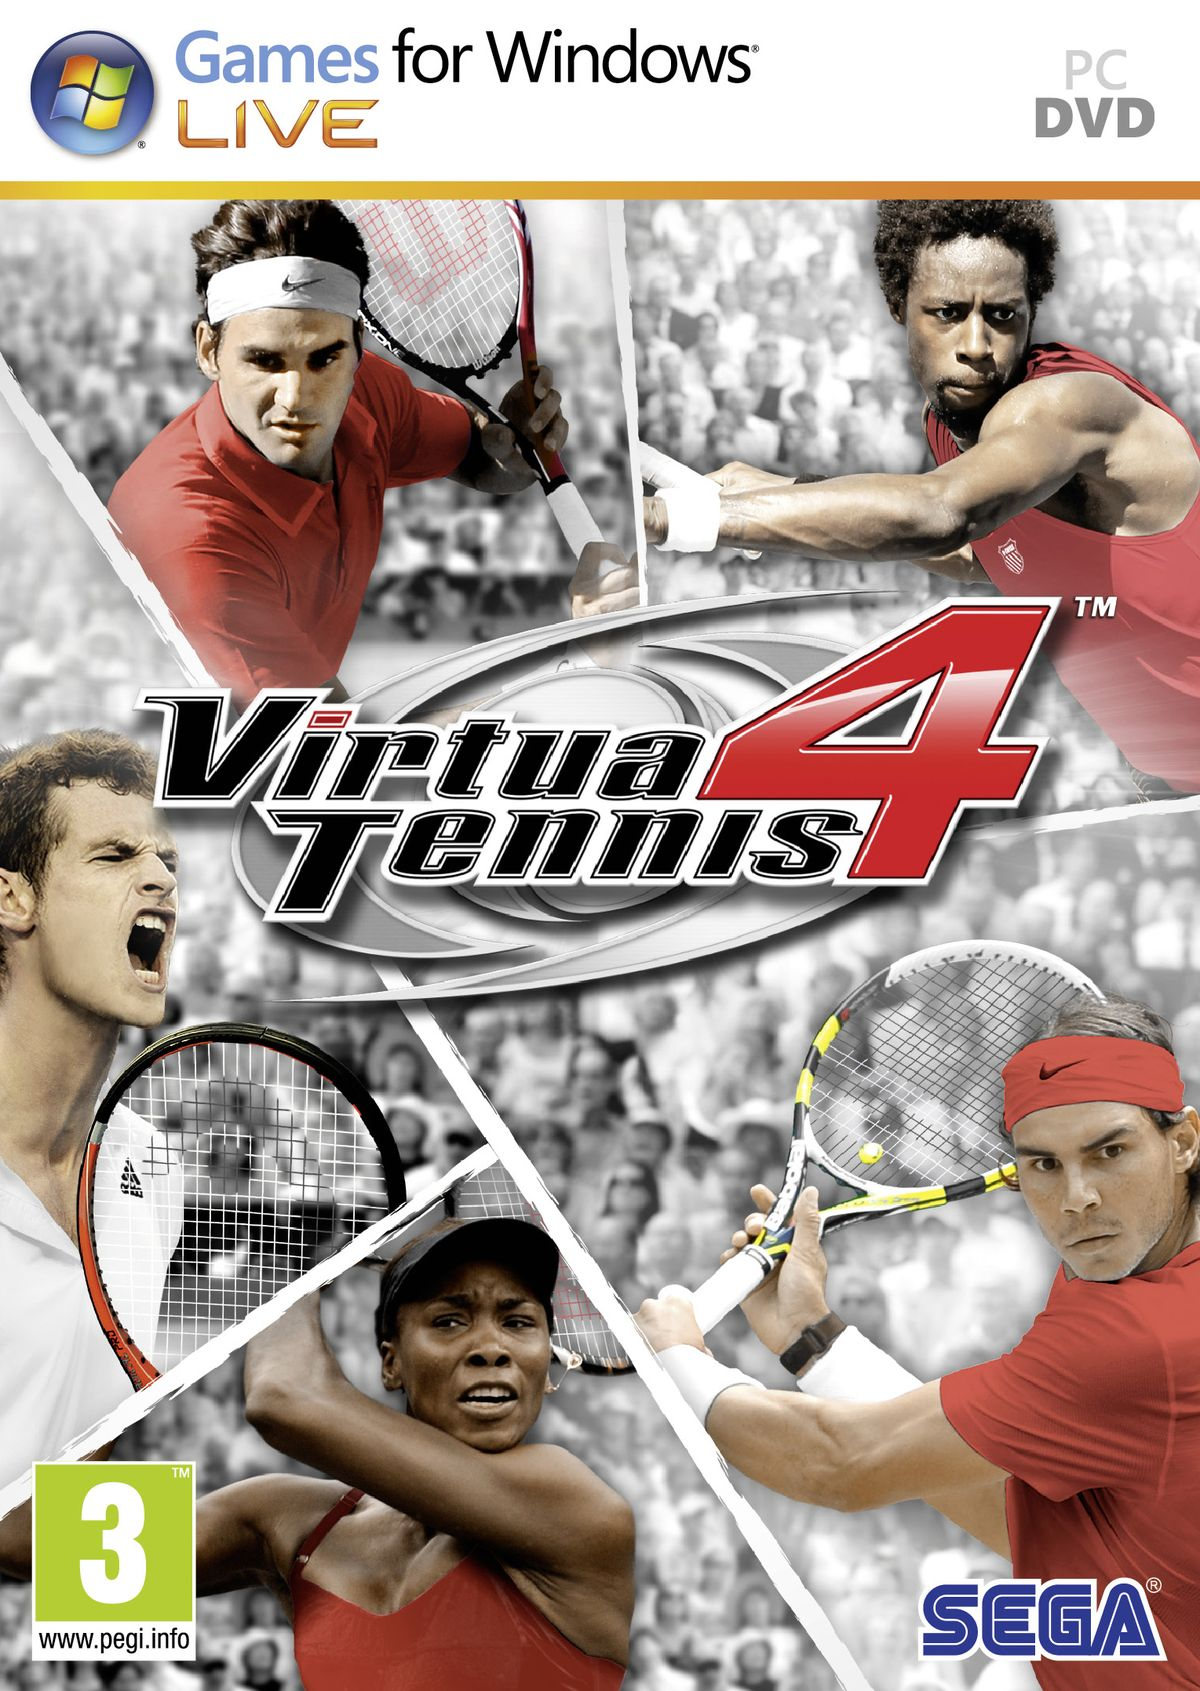 Virtua tennis 4 ps3 download.